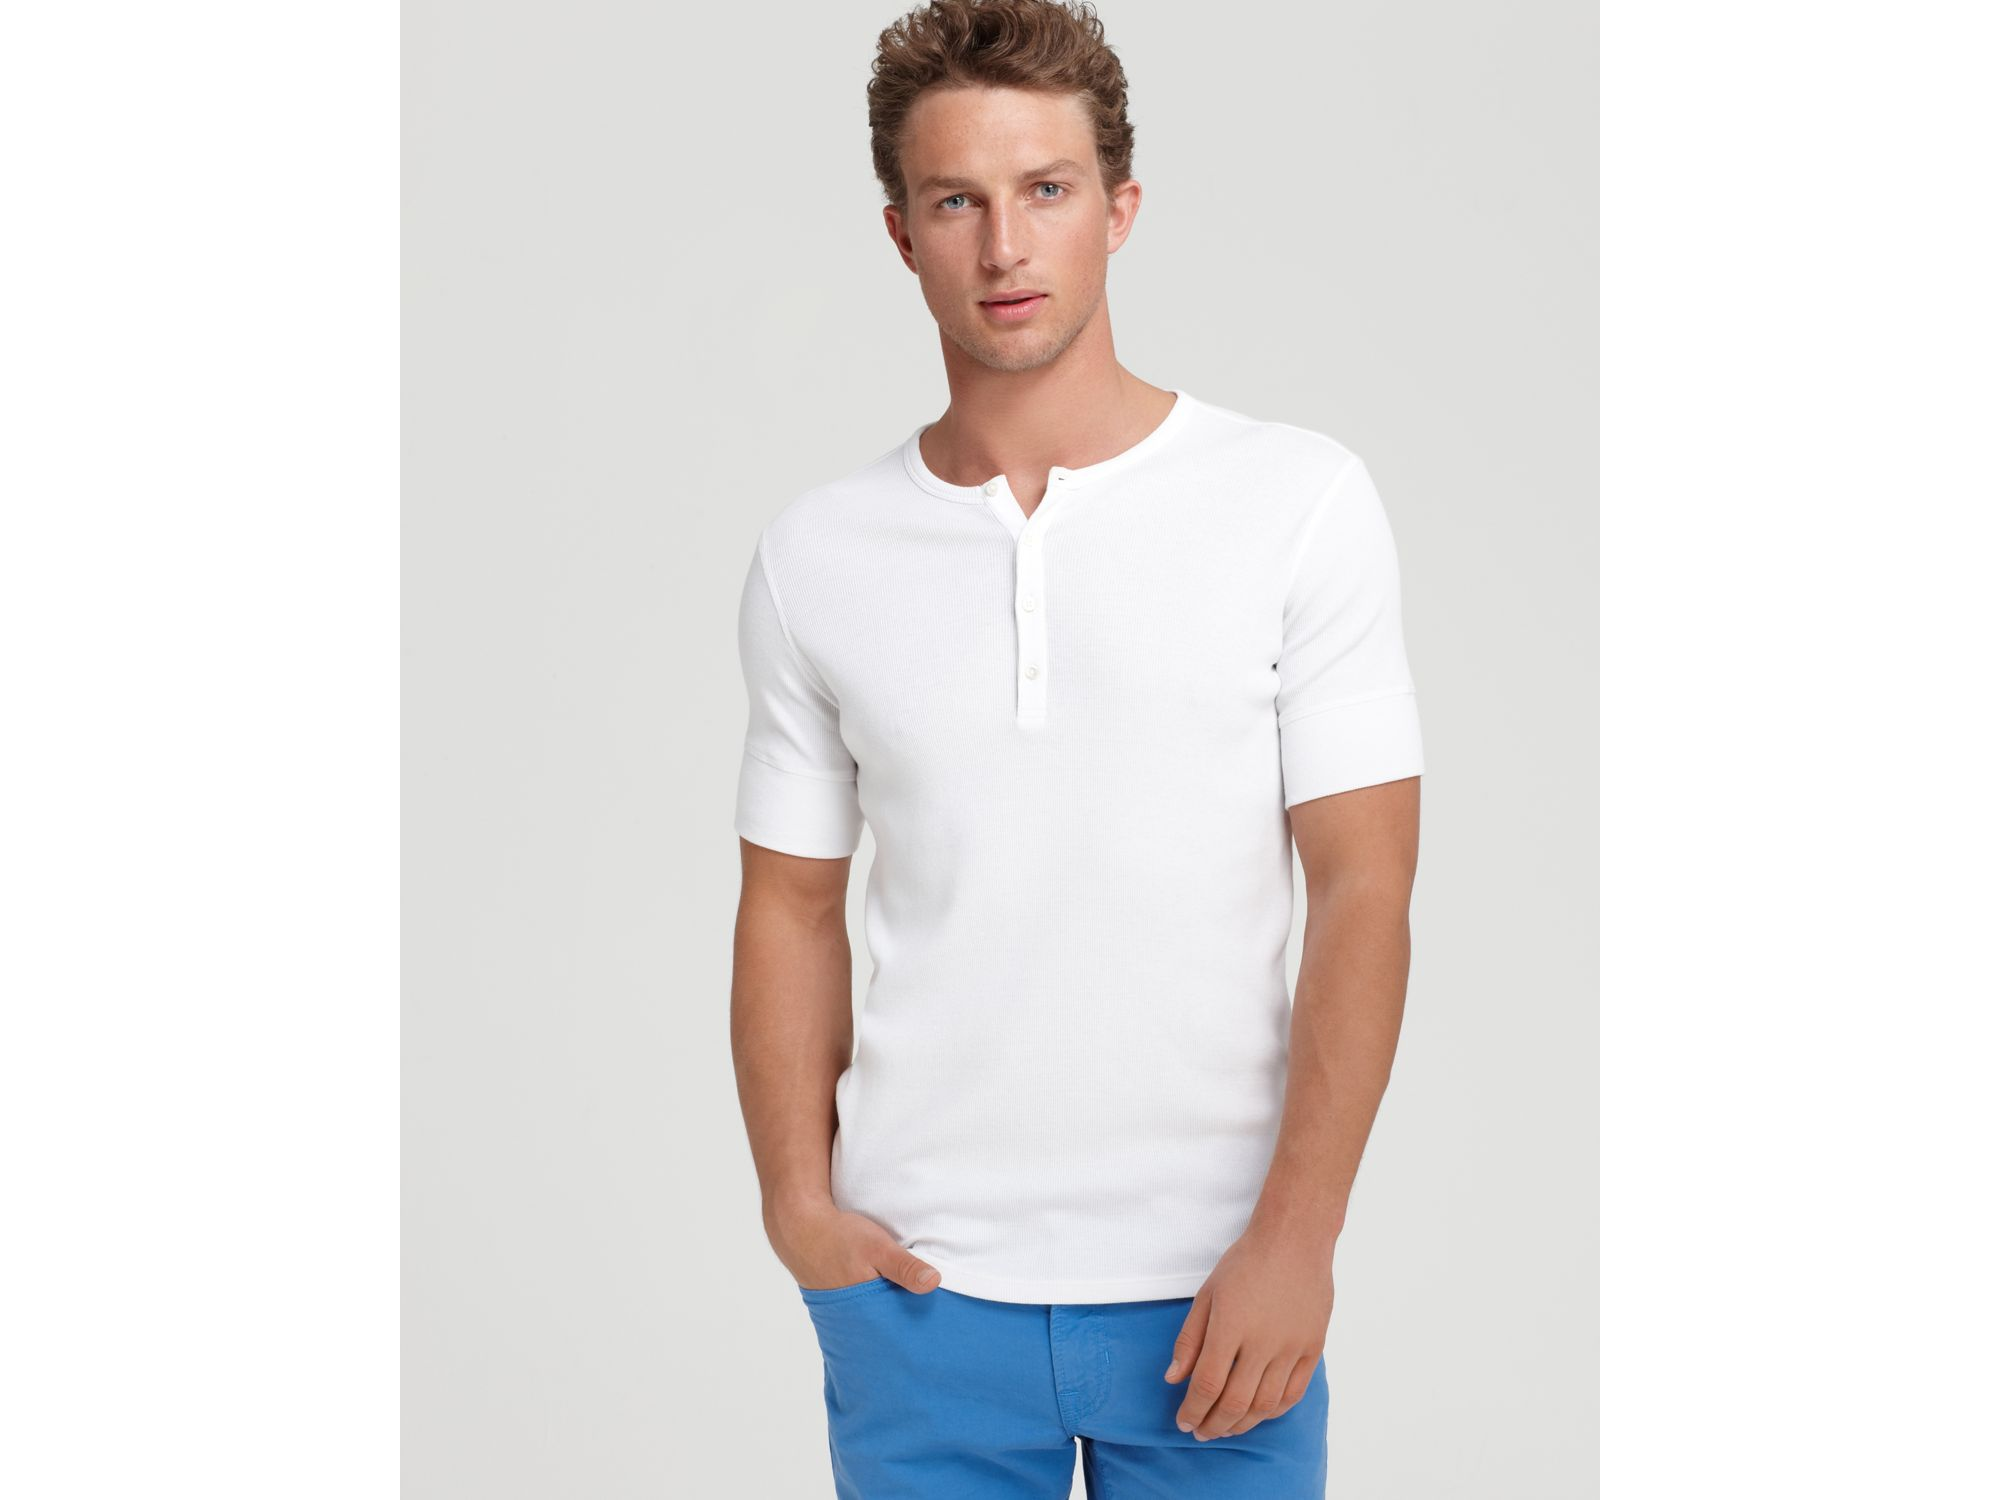 The Riggs Workwear by Wrangler Short Sleeve Henley Shirt - 3W is crafted to work as hard as you do and will be your go-to everyday comfort and performance t-shirt. This men's tee features a tagless neck label and triple needle stitching to ensure resilience.